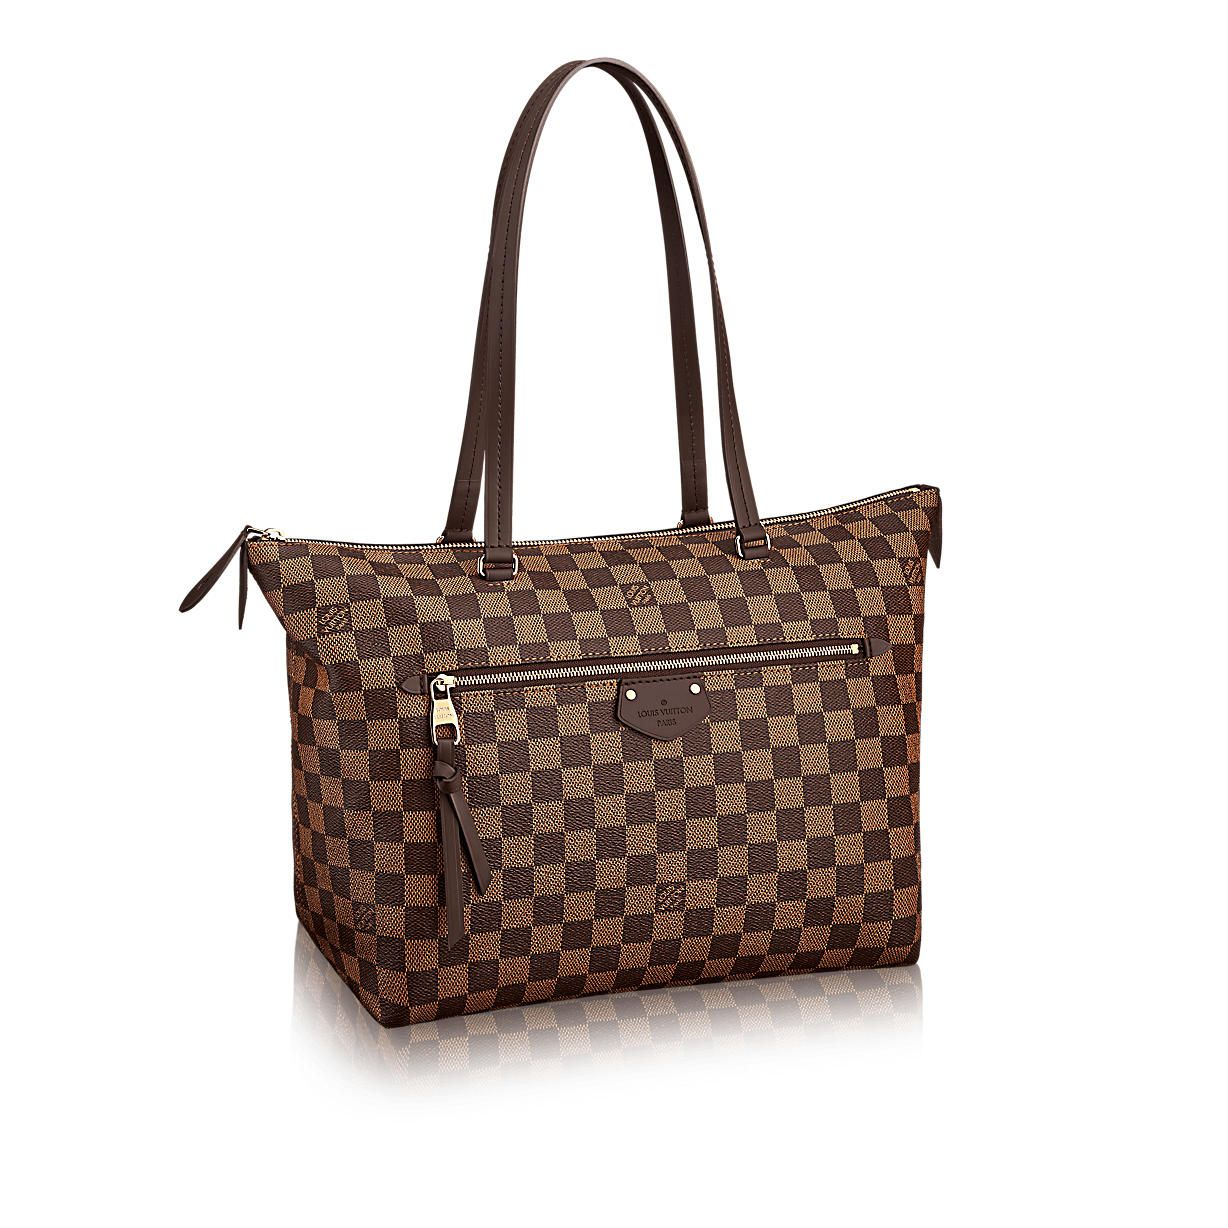 e46083cf1dd9 Iena MM Damier Ebene Canvas in WOMEN s HANDBAGS collections by Louis Vuitton